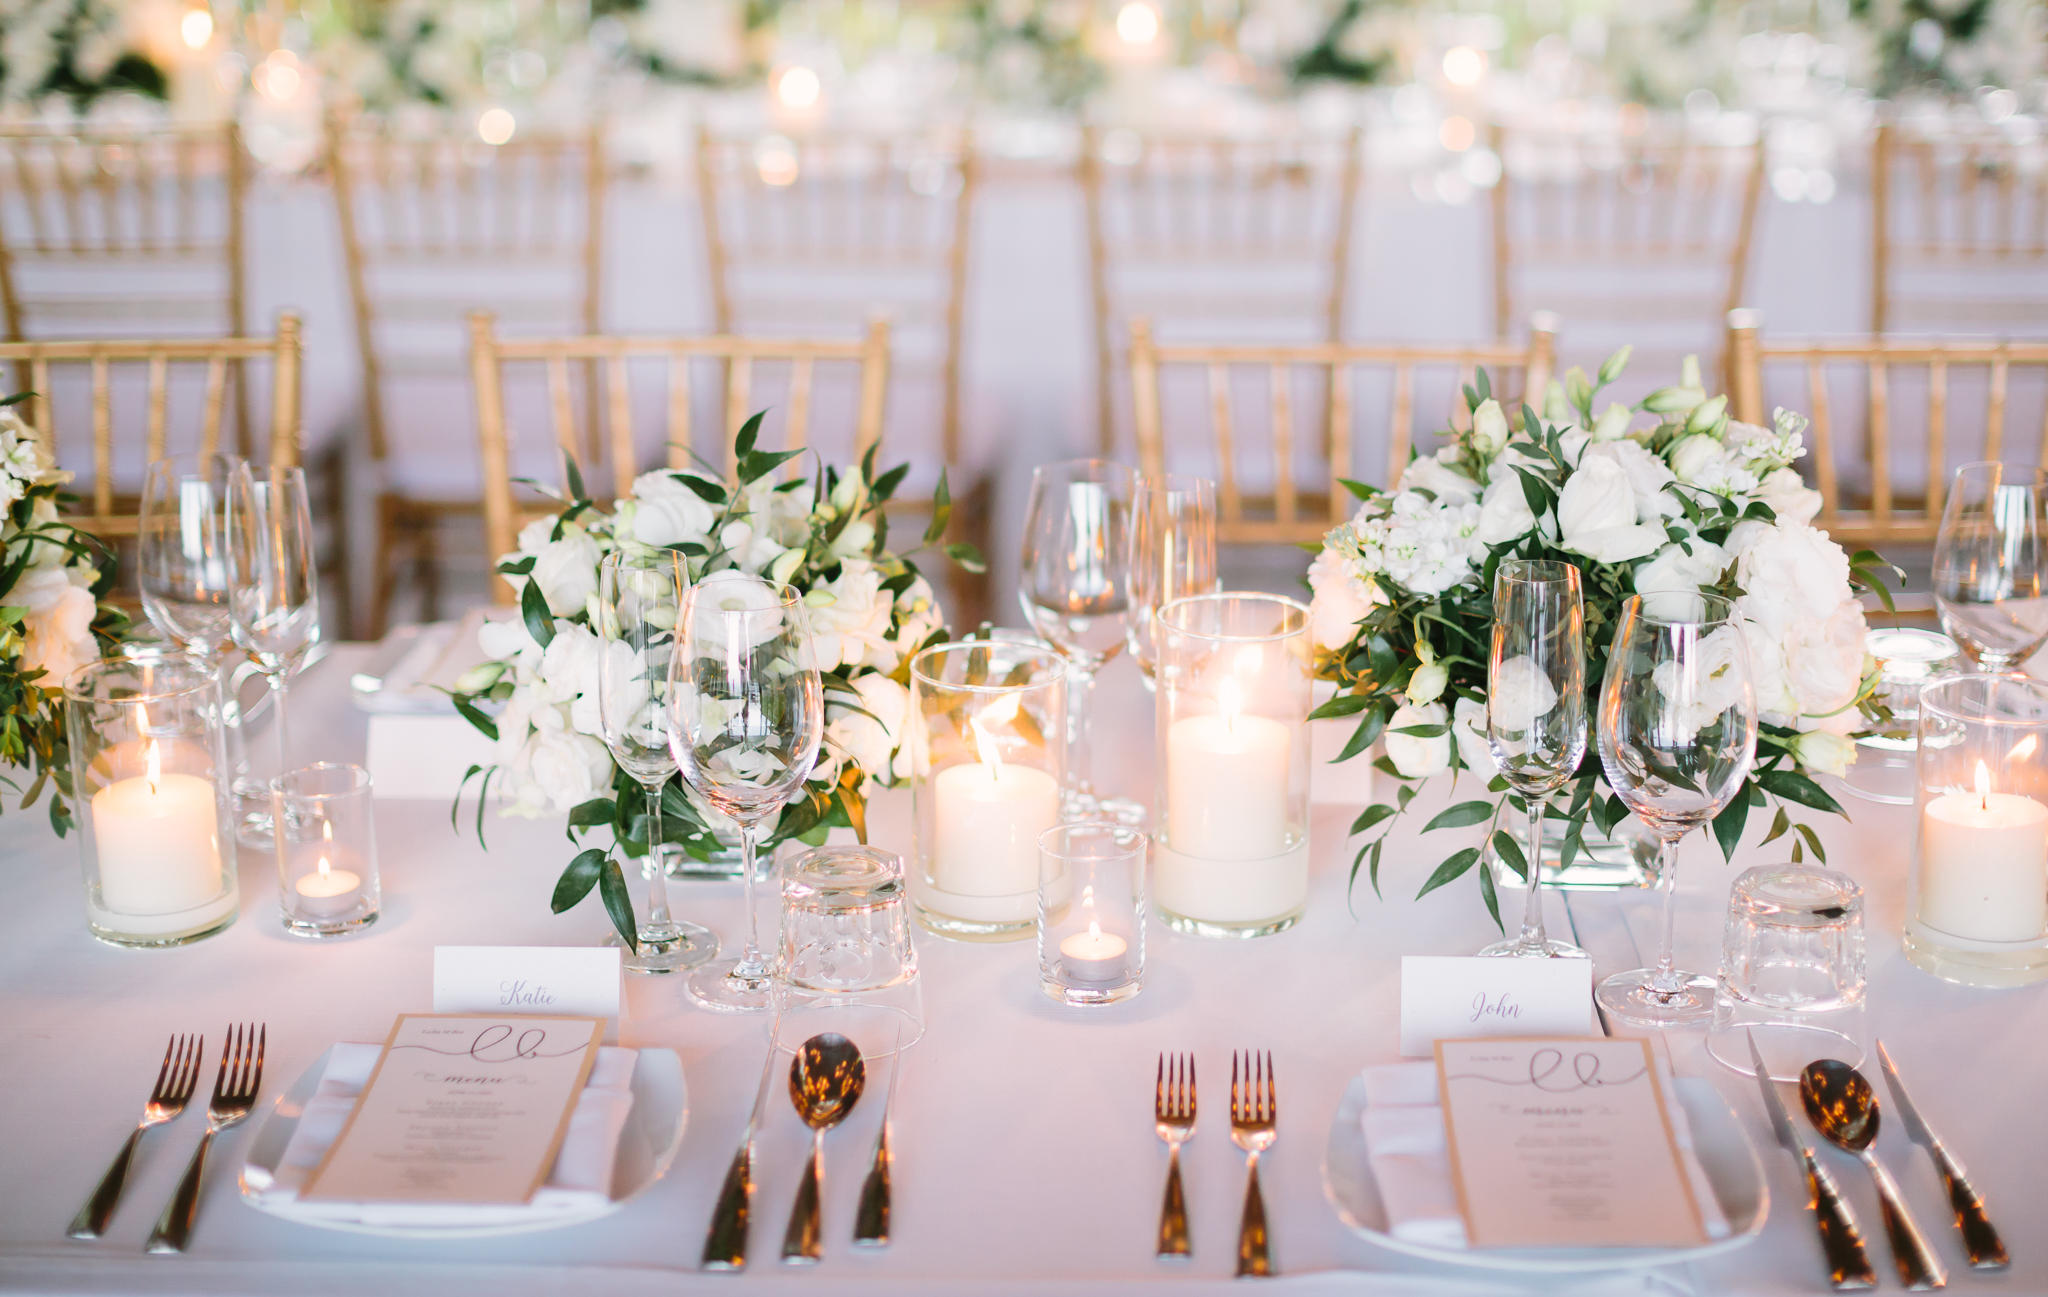 wedding ideas - photo by DarinImages http://ruffledblog.com/this-bride-is-sharing-all-you-need-to-know-about-a-destination-wedding-in-thailand